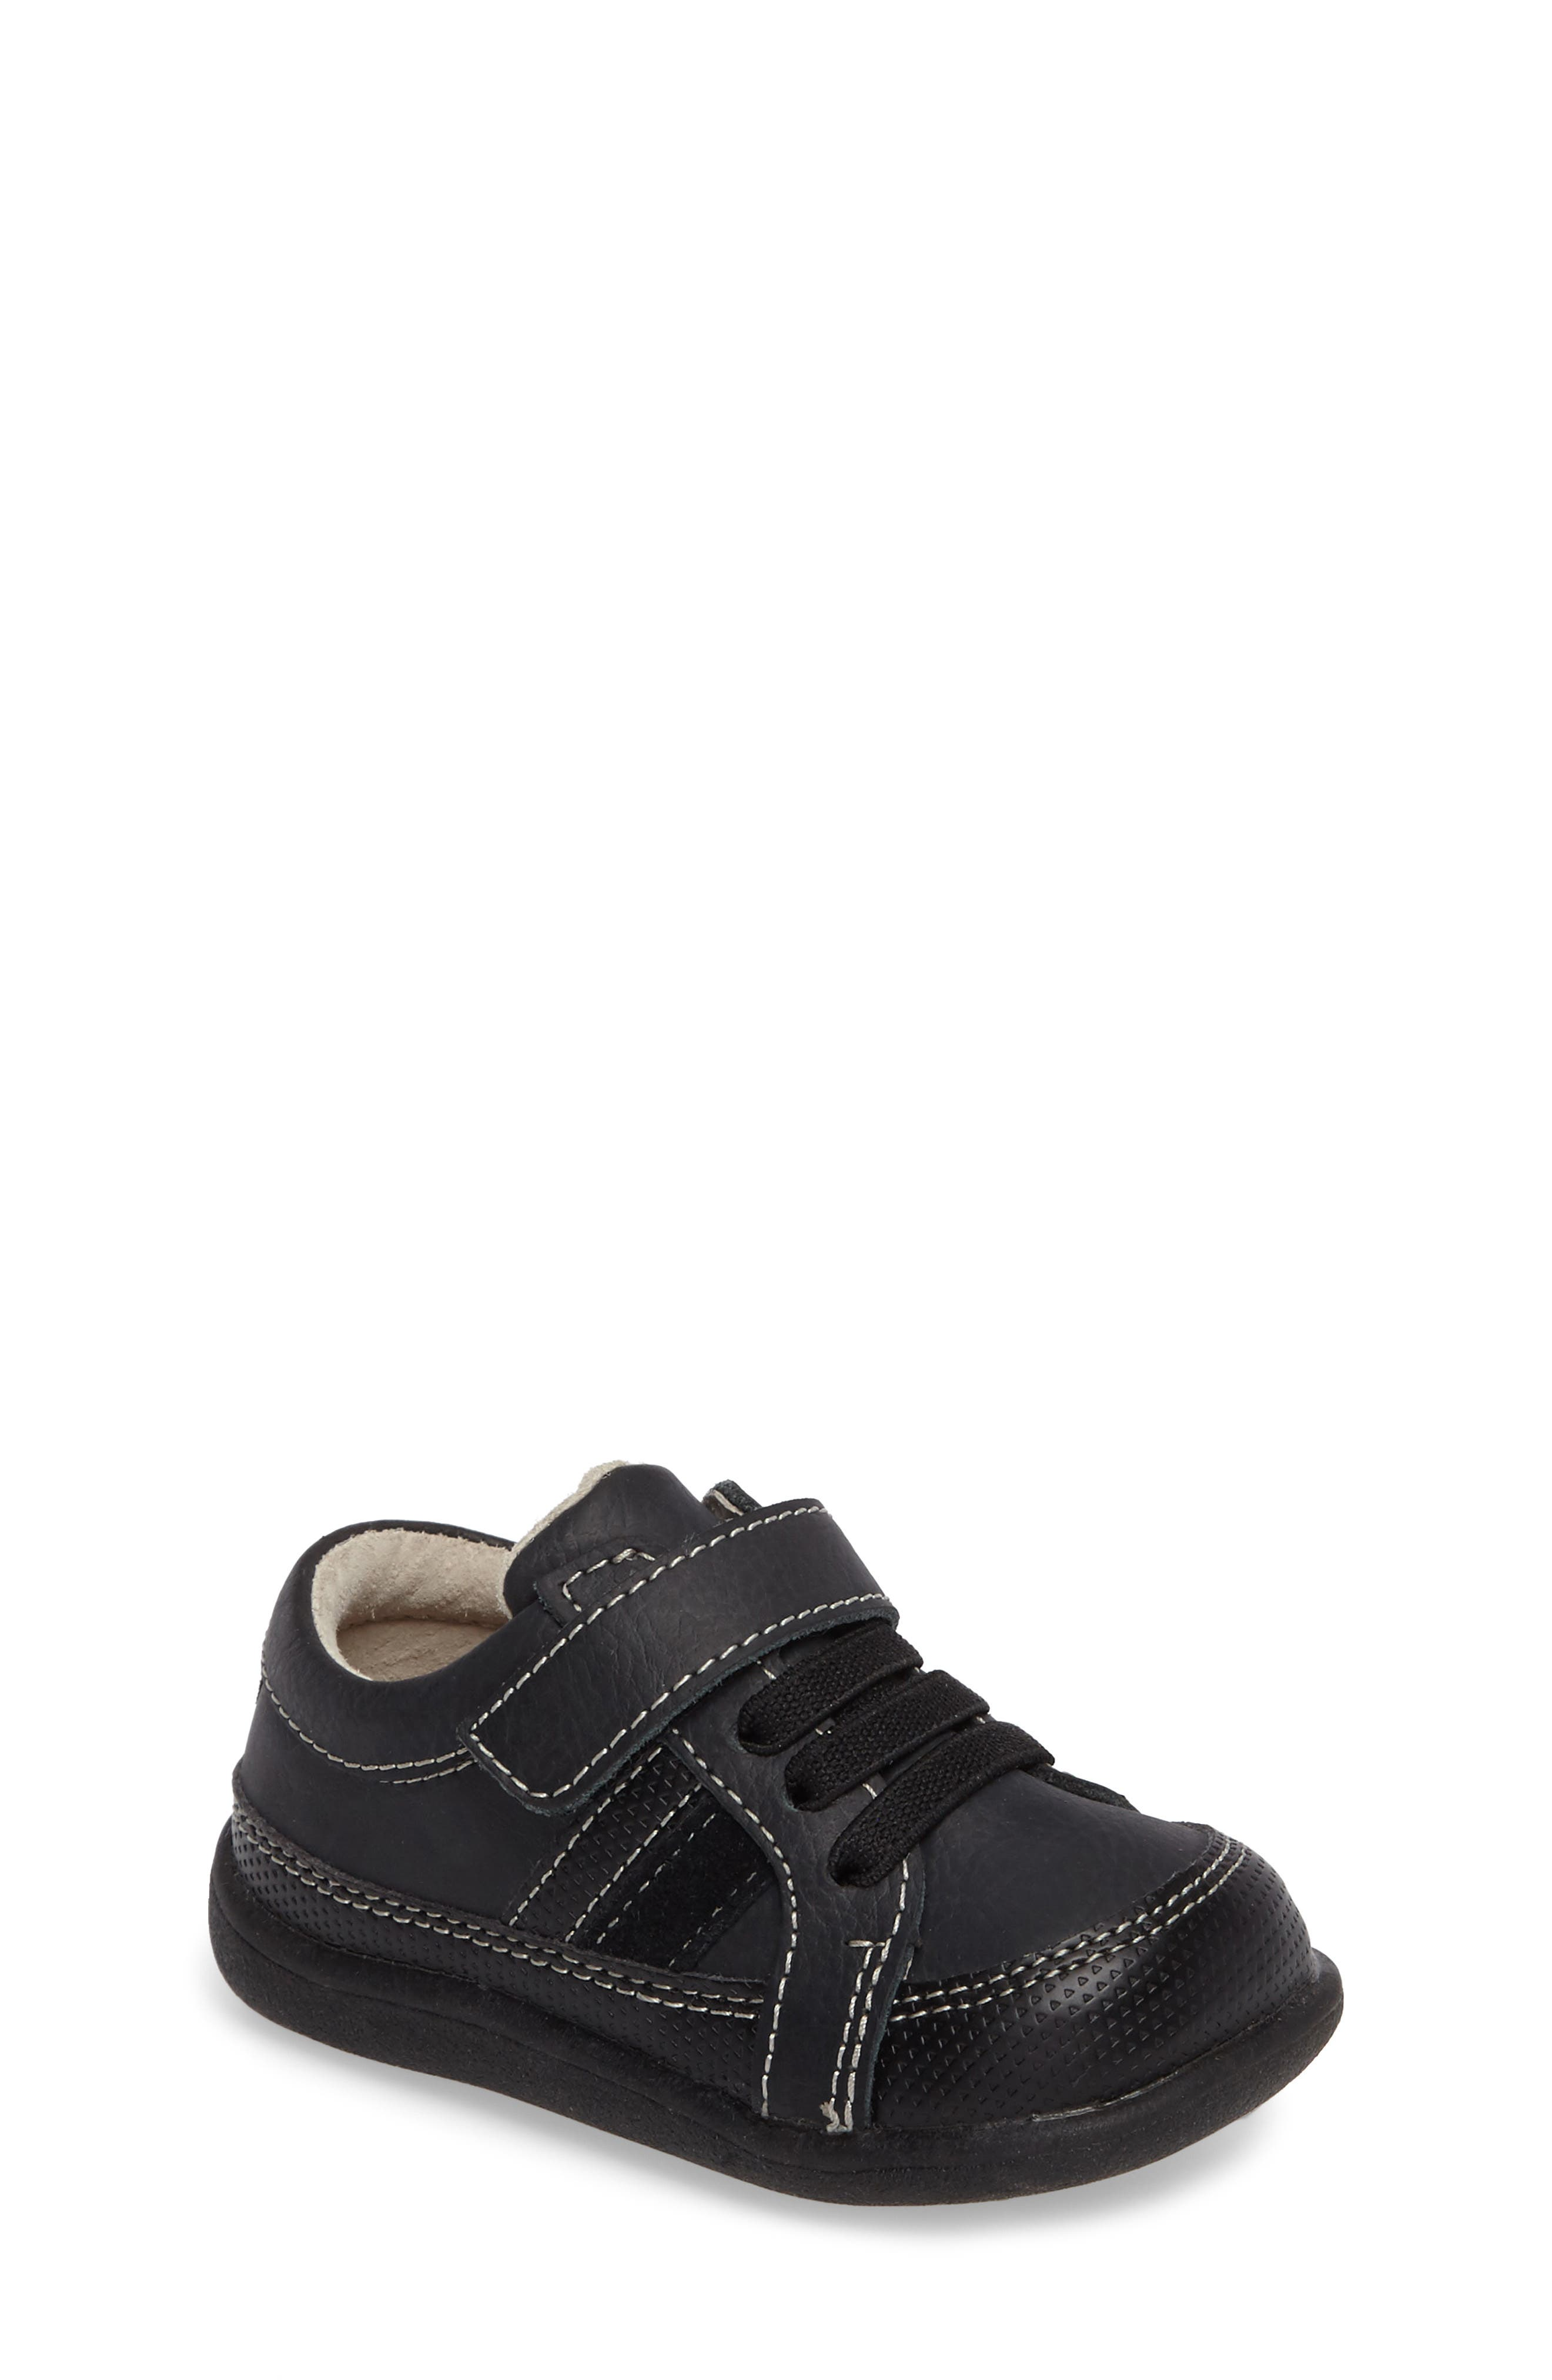 See Kai Run Randall II Sneaker (Baby, Walker, Toddler & Little Kid)